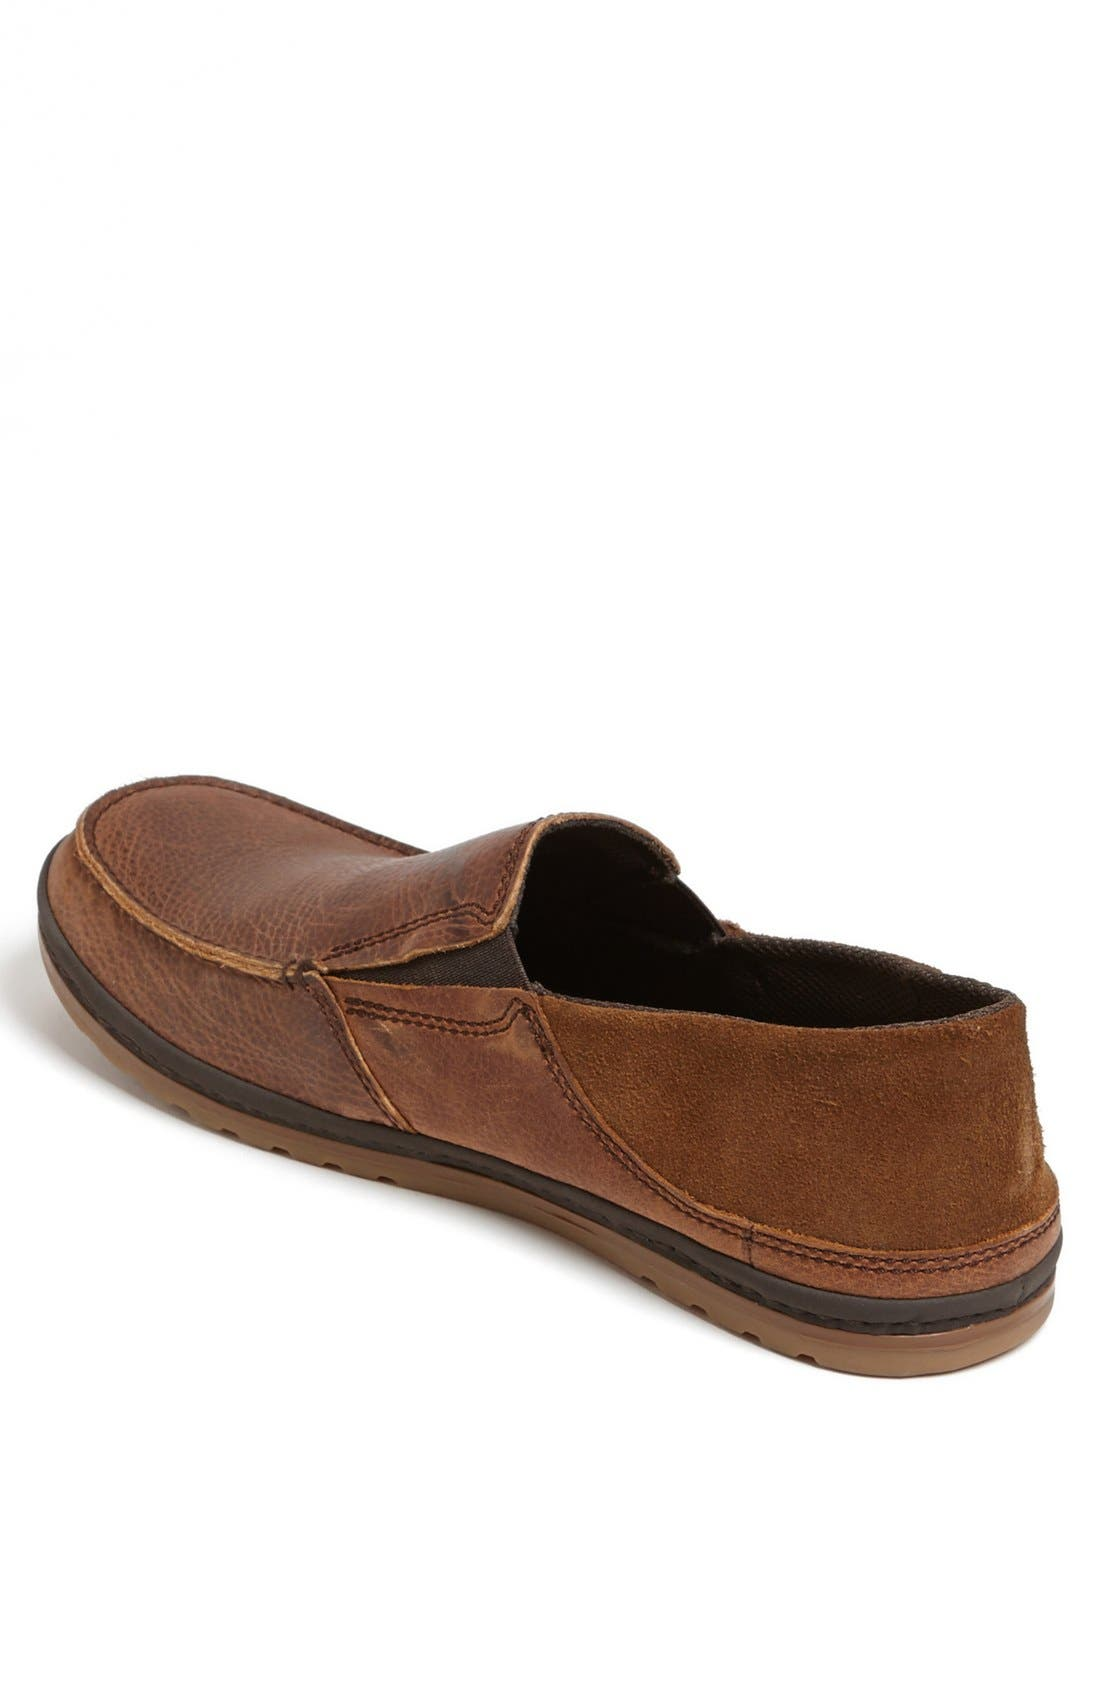 Alternate Image 2  - Teva 'Clifton Creek' Leather Driving Moccasin